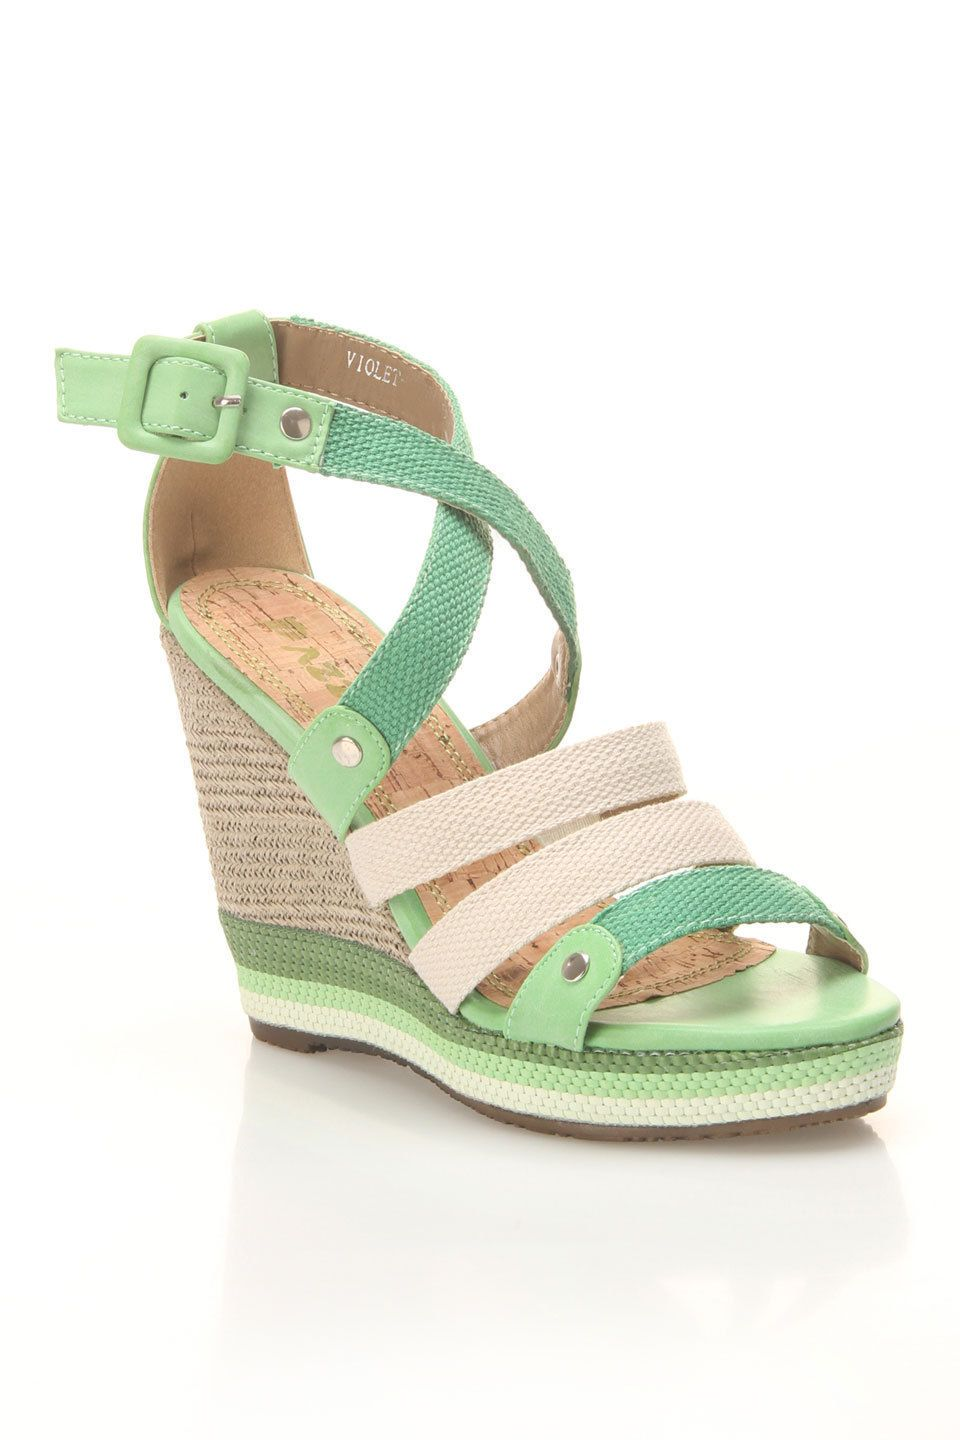 Violet Wedge Sandals In Green  $29.99